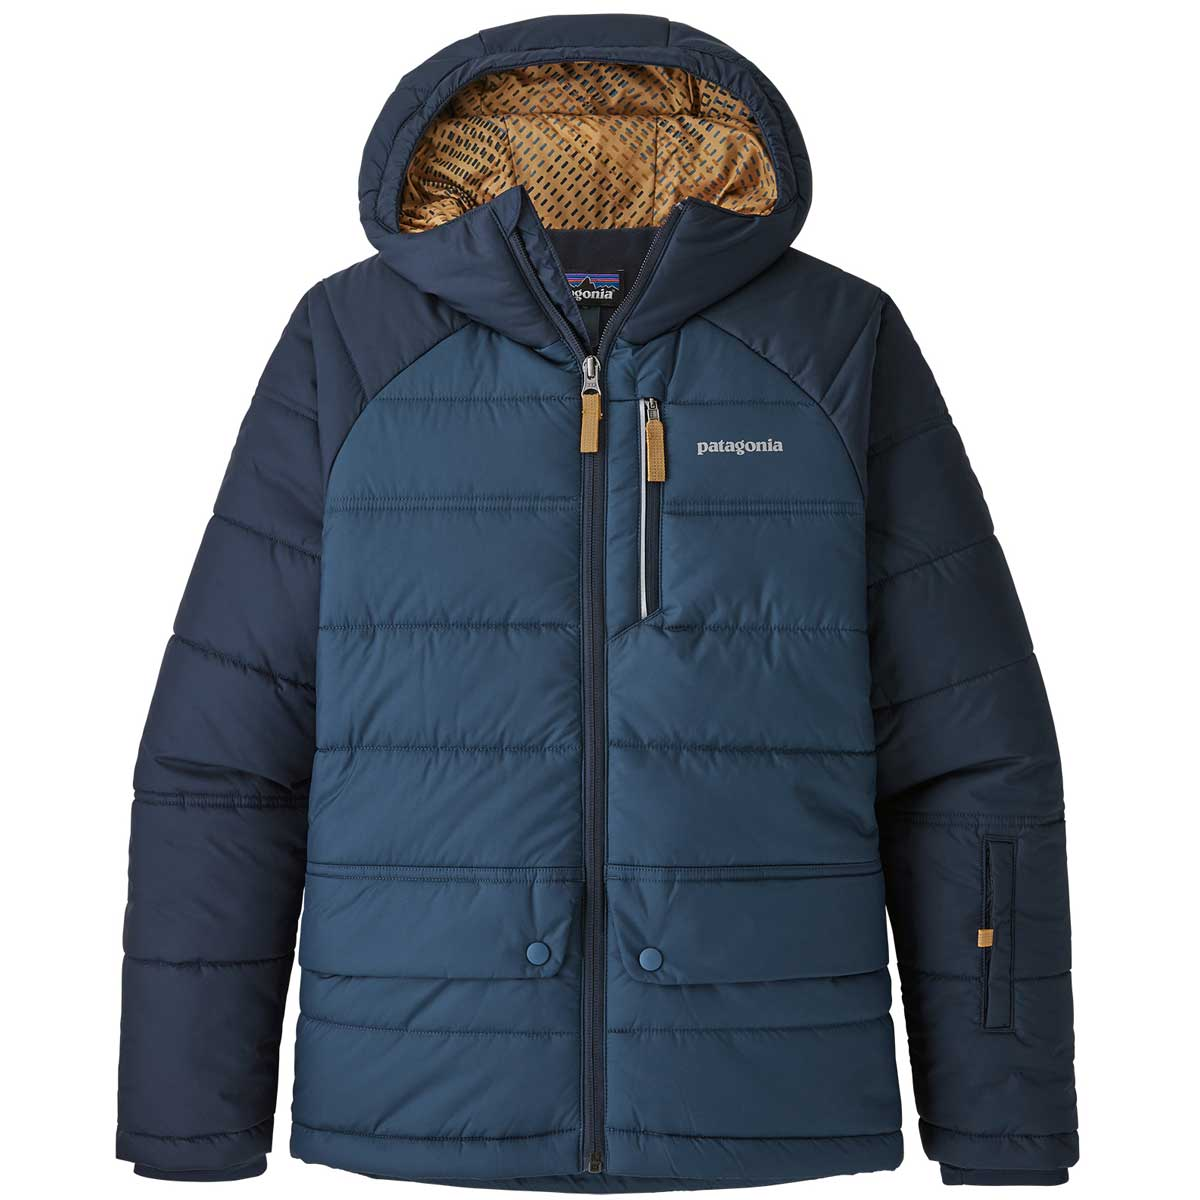 Patagonia boy's Pine Grove Jacket in Stone Blue front view